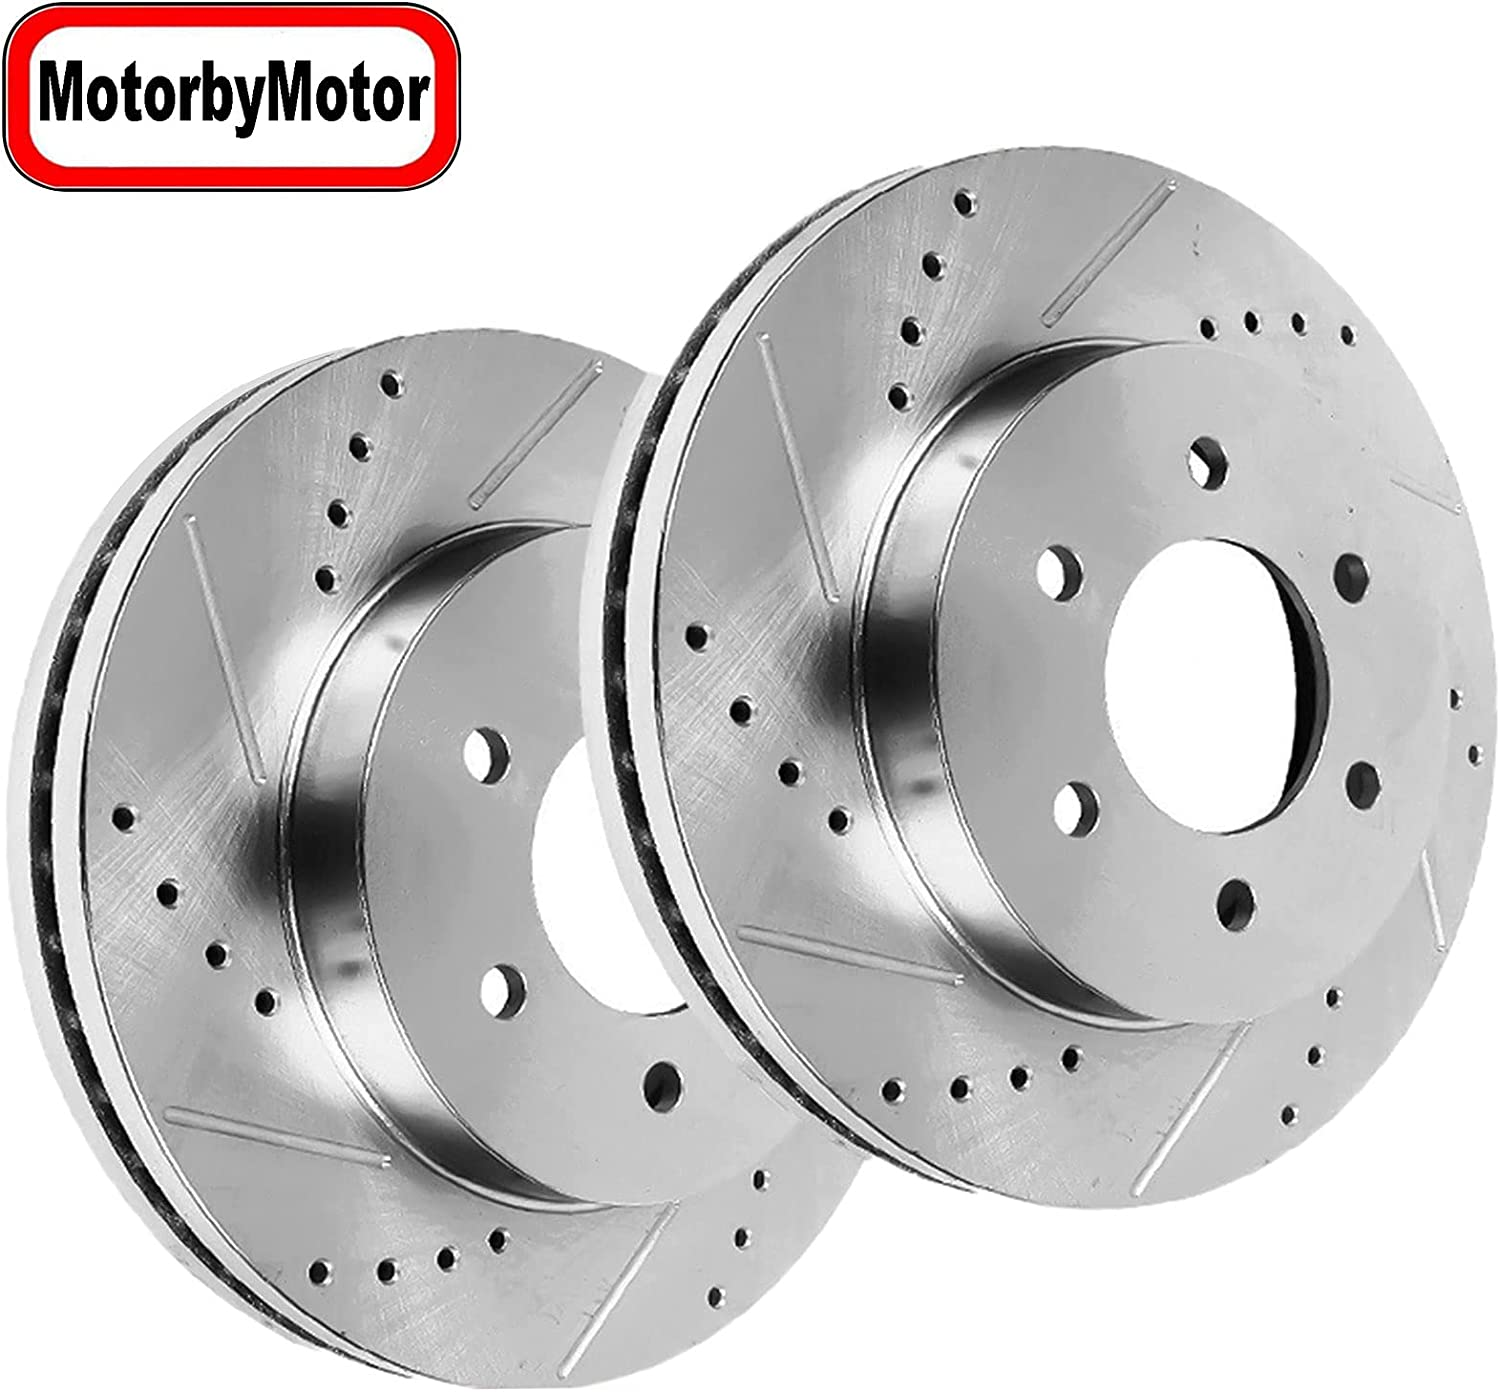 Motorbymotor Front Brake Rotors 297mm B Ranking TOP17 Limited time sale Drilled Slotted Design